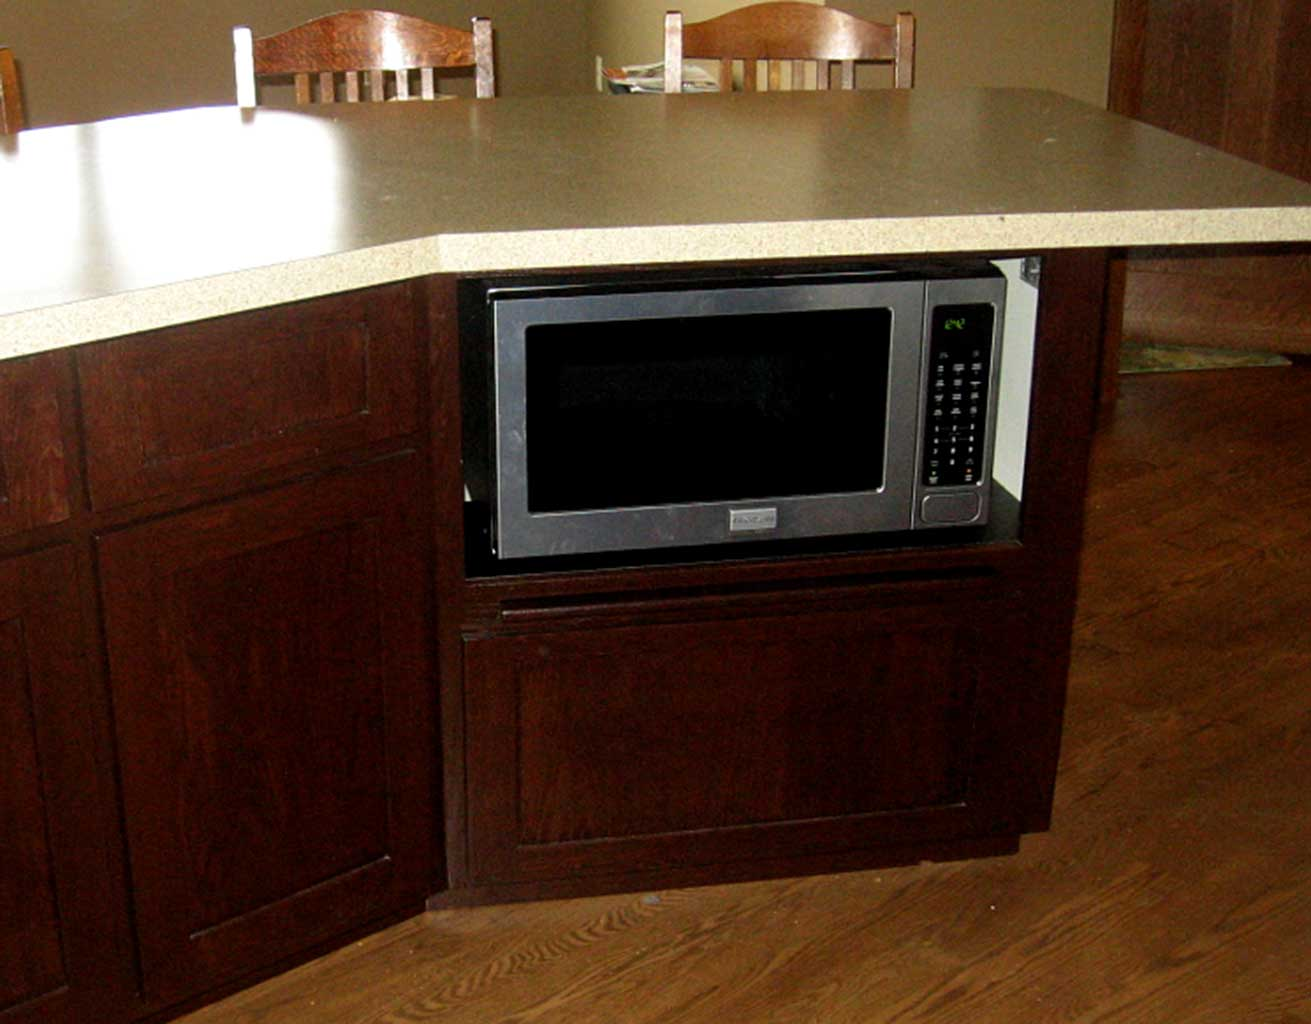 Microwave Base Cabinet · Leave A Comment